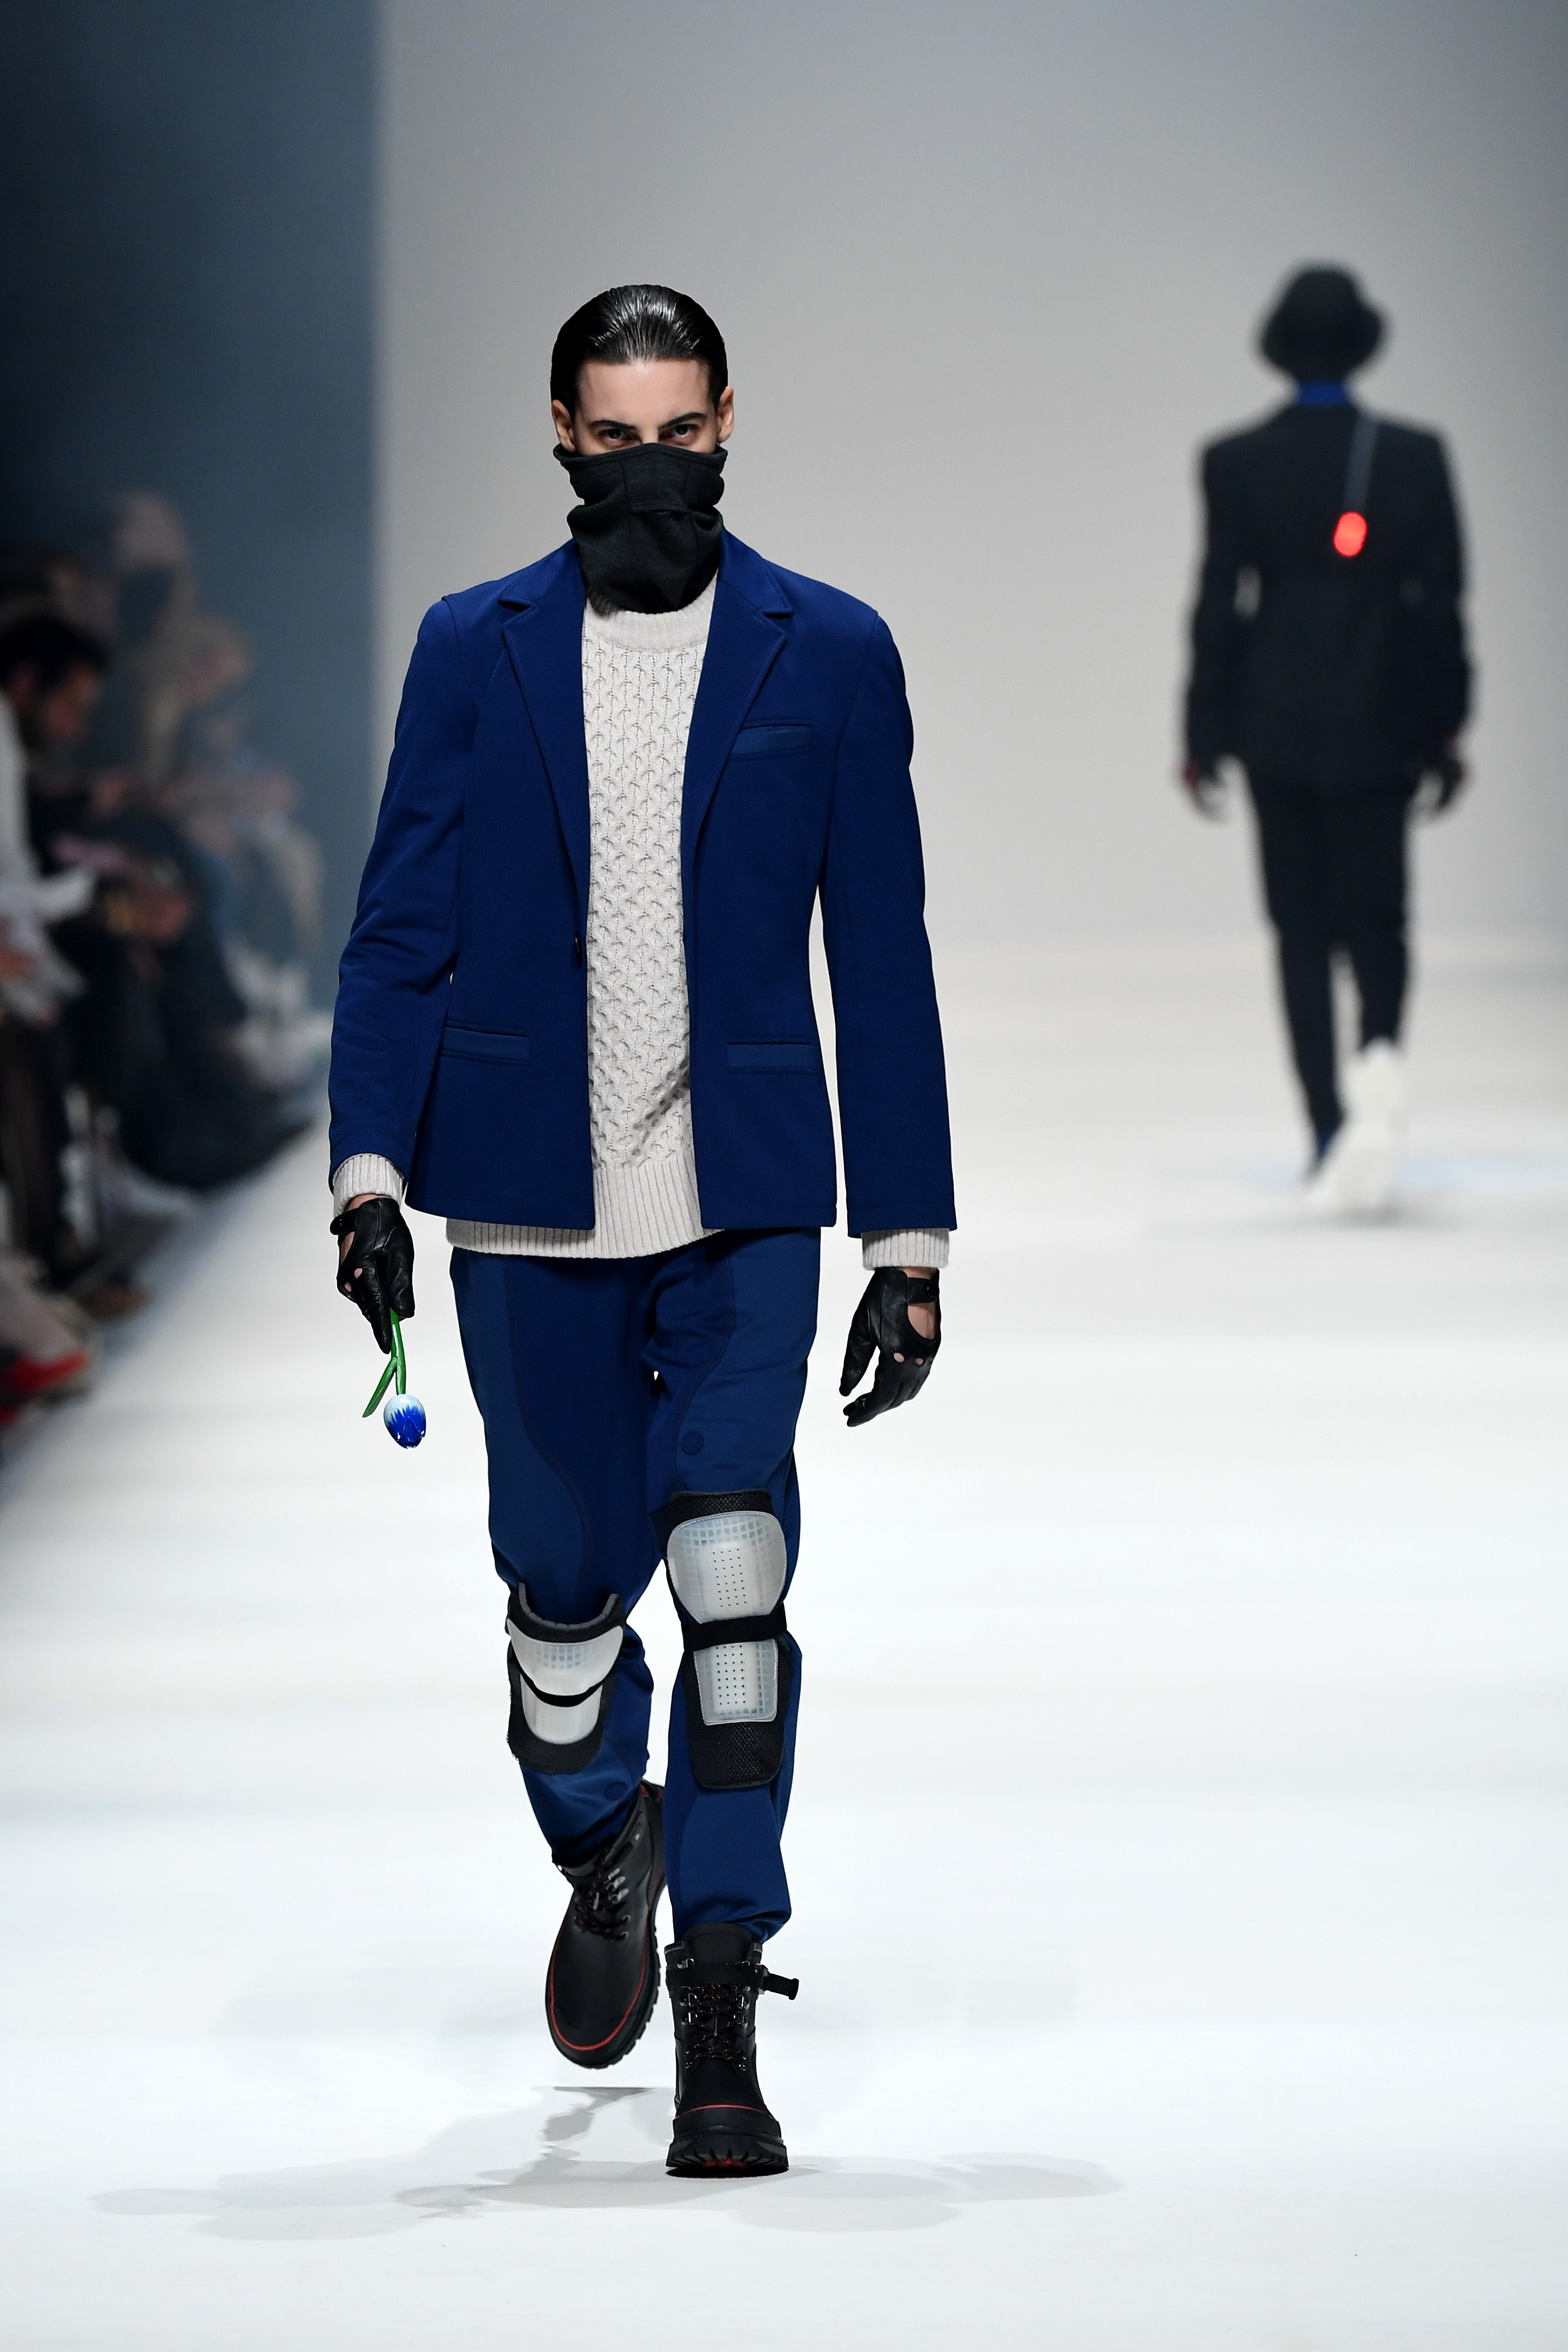 BERLIN, GERMANY - JANUARY 14: A model wearing a suit by Superconductor, pullover by Armedangels, scarf by Icebreaker, gloves by Vintage and shoes by Tretorn X Nigel Cabourn walks the runway at the Neonyt show during Berlin Fashion Week Autumn/Winter 2020 at Kraftwerk Mitte on January 14, 2020 in Berlin, Germany. (Photo by John Phillips/Getty Images for MBFW)